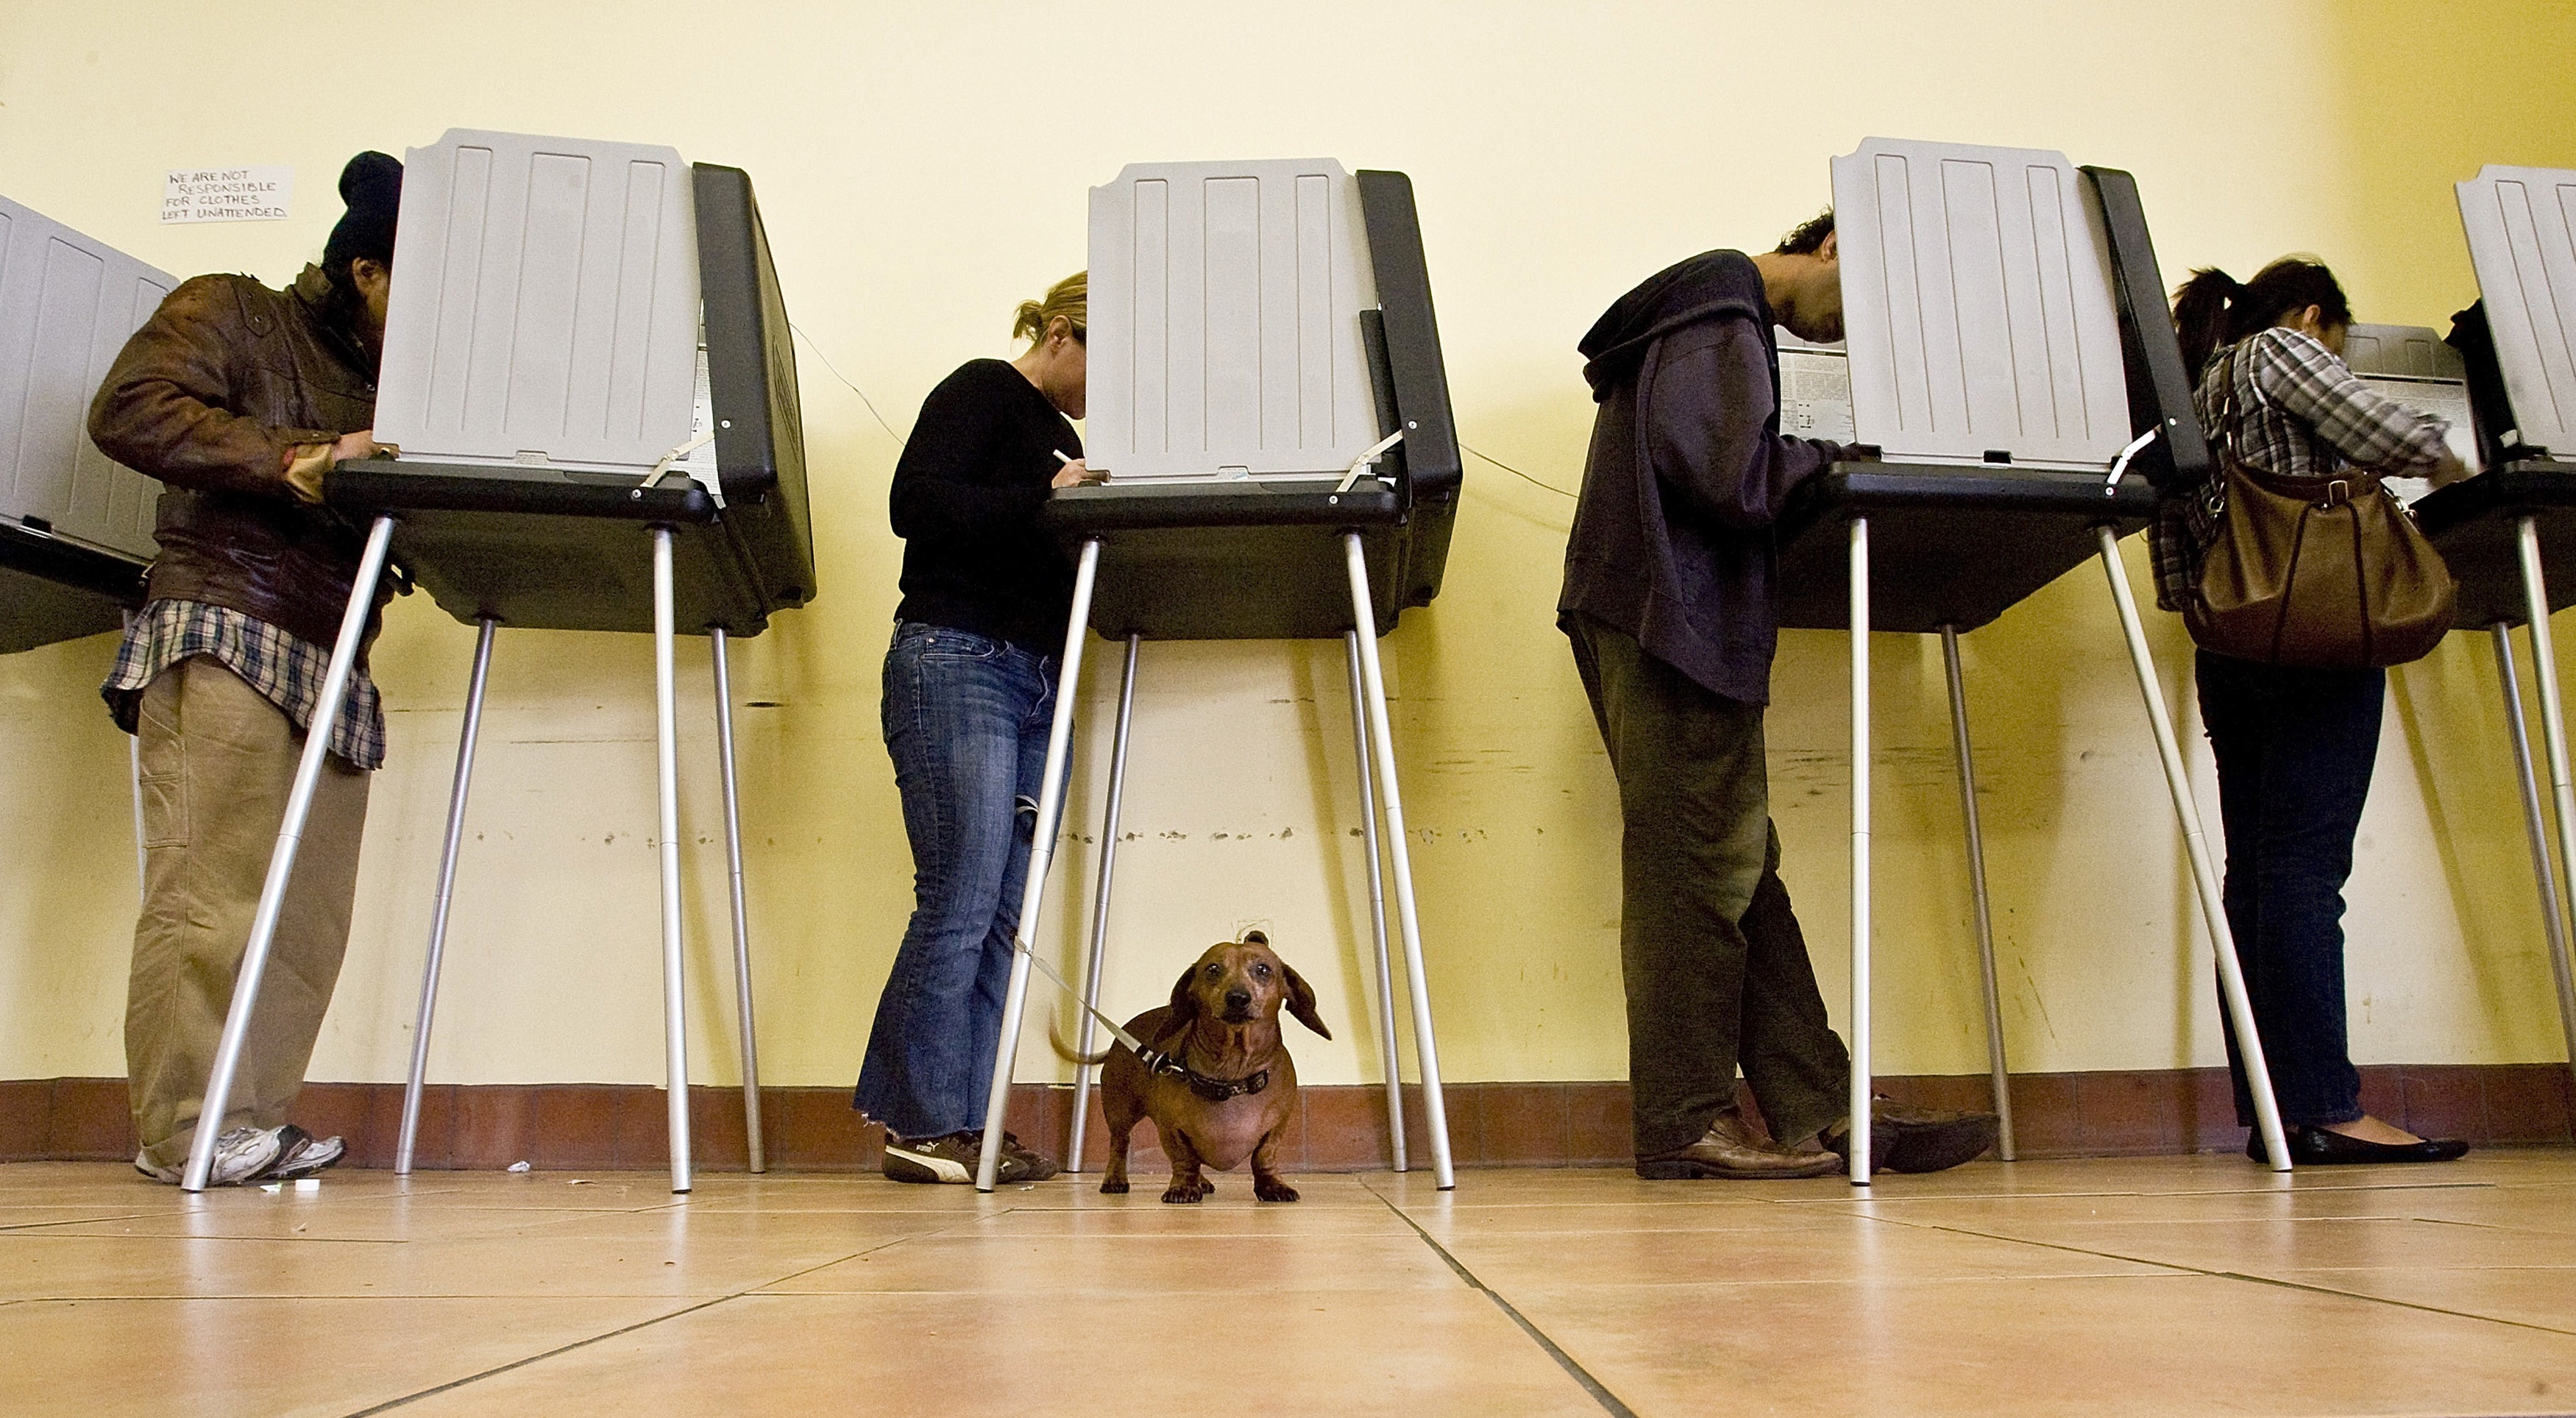 Voters at a polling place in San Francisco. (David Paul Morris/Getty Image)